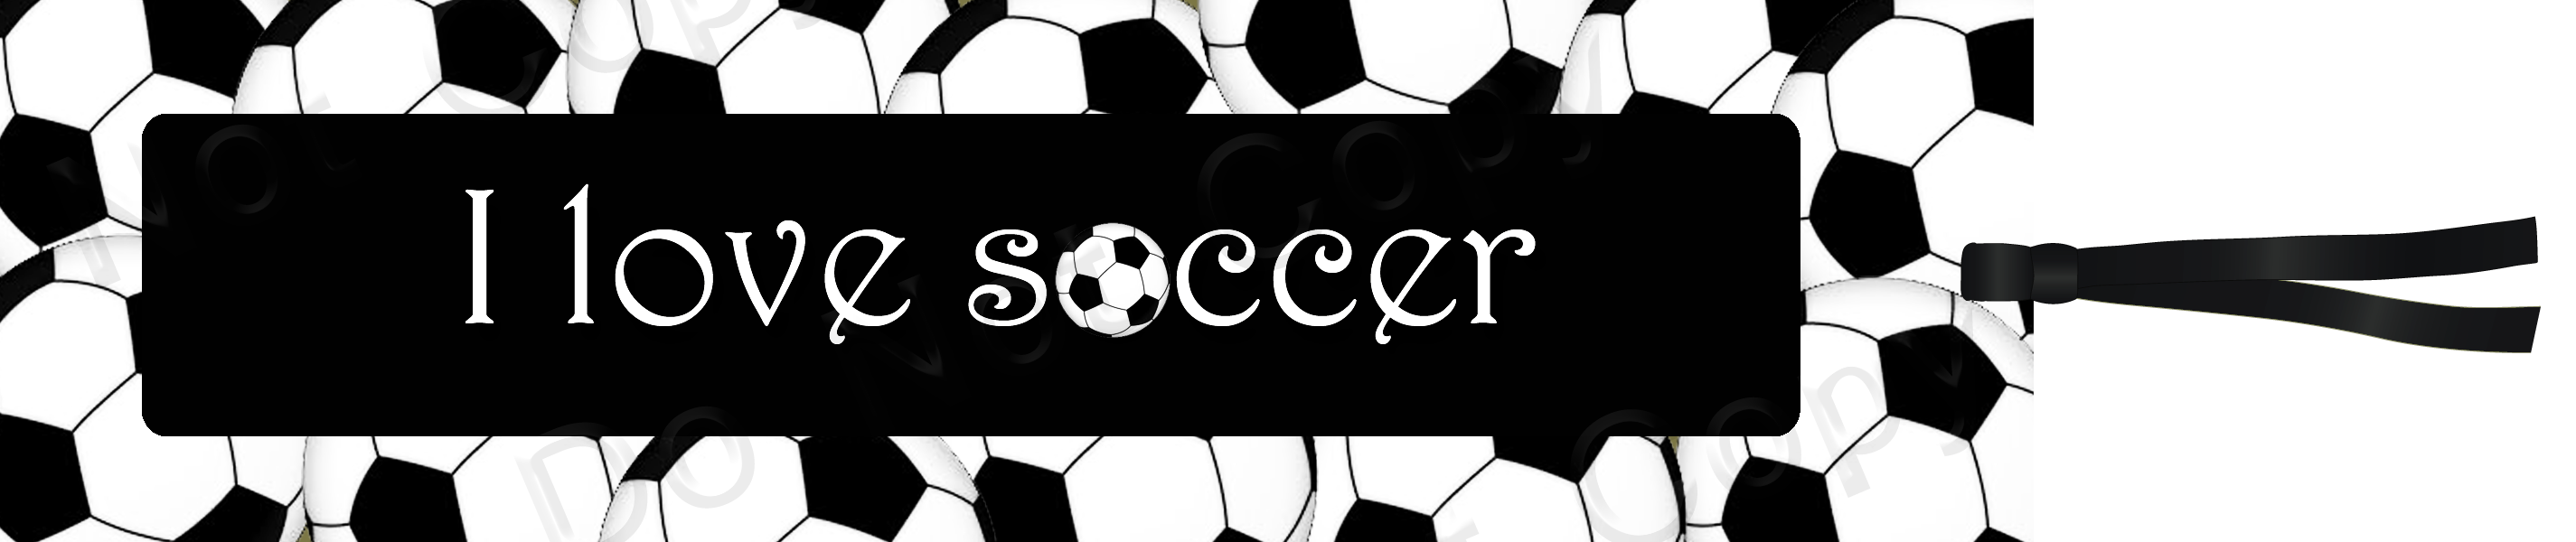 Sports_SoccerBalls_Black